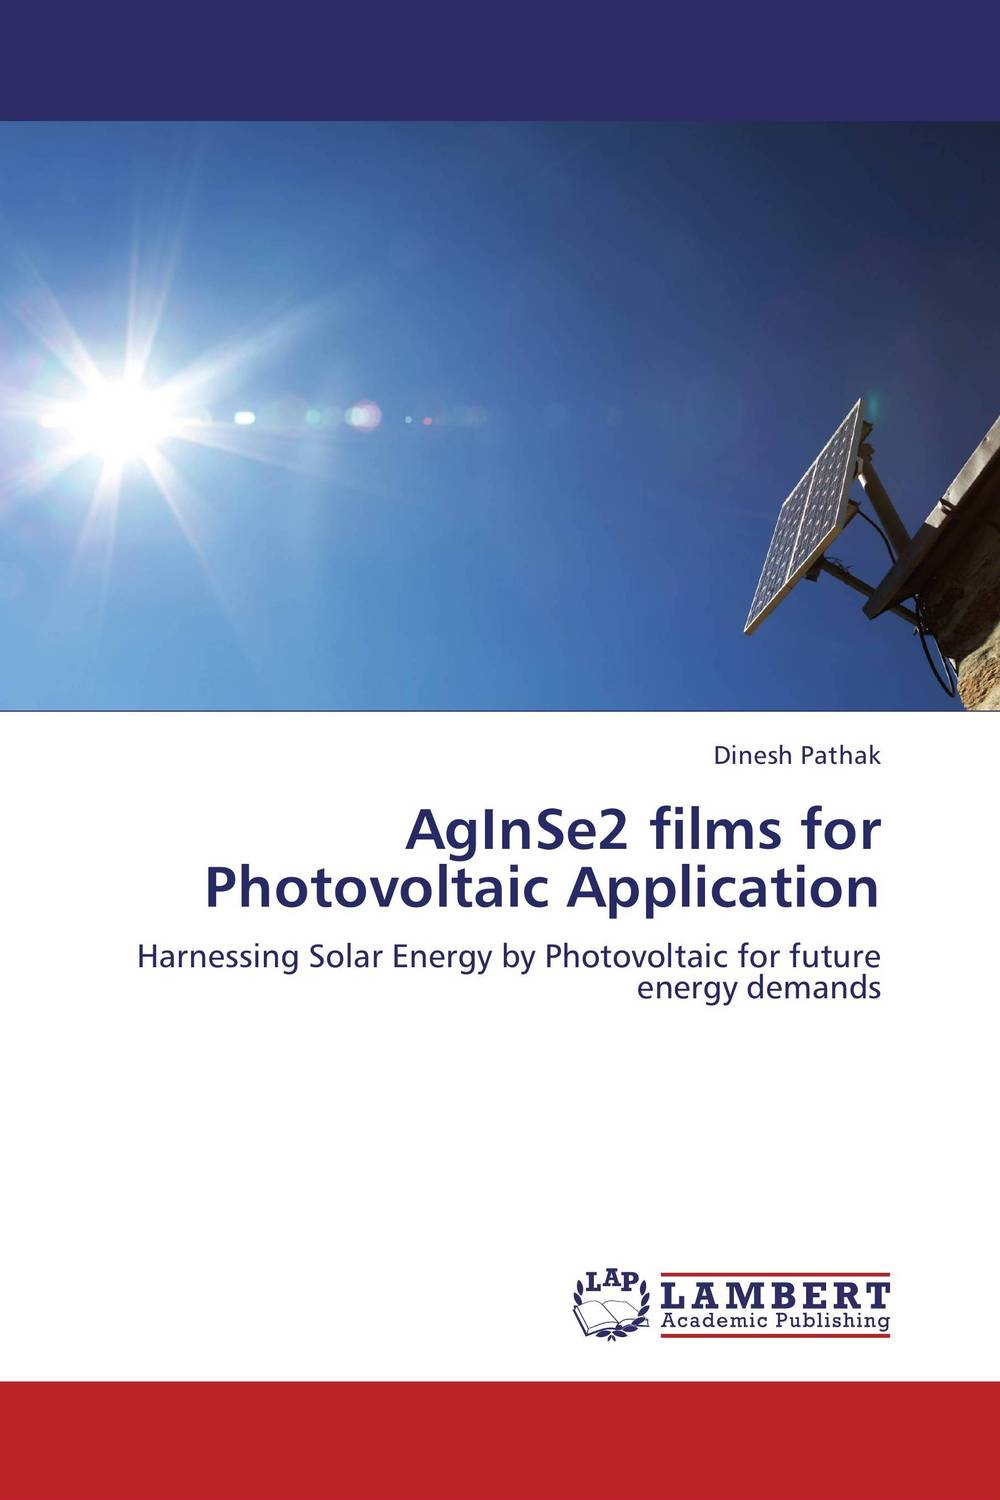 AgInSe2 films for Photovoltaic Application